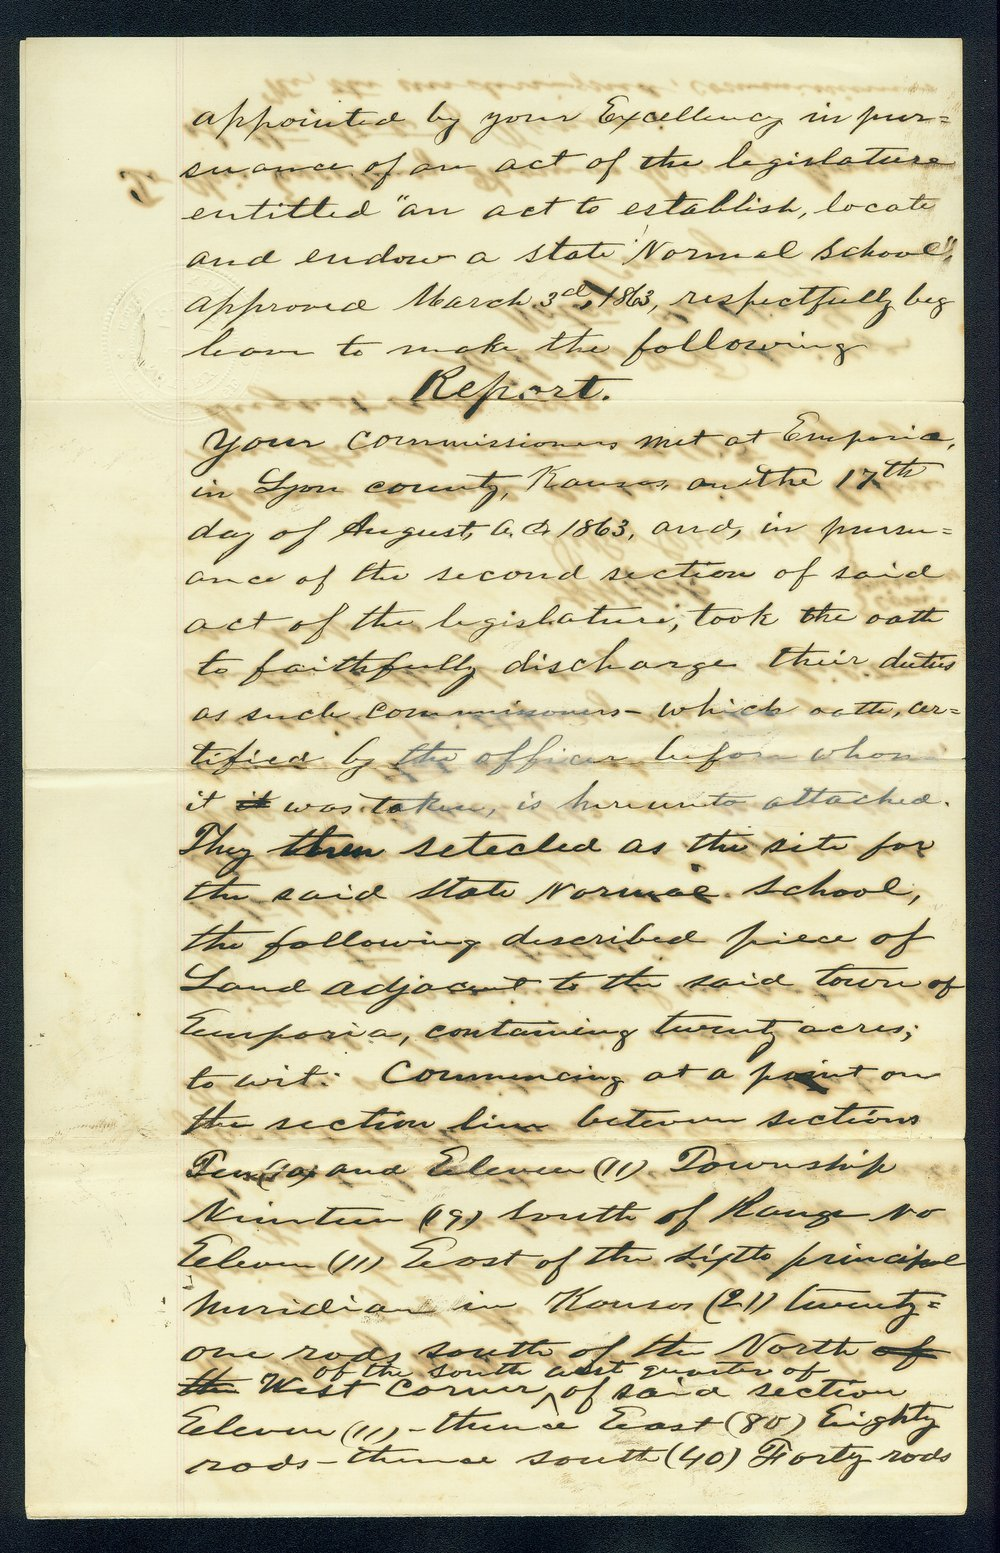 Governor Thomas Carney college and university lands, 1863, correspondence - 11